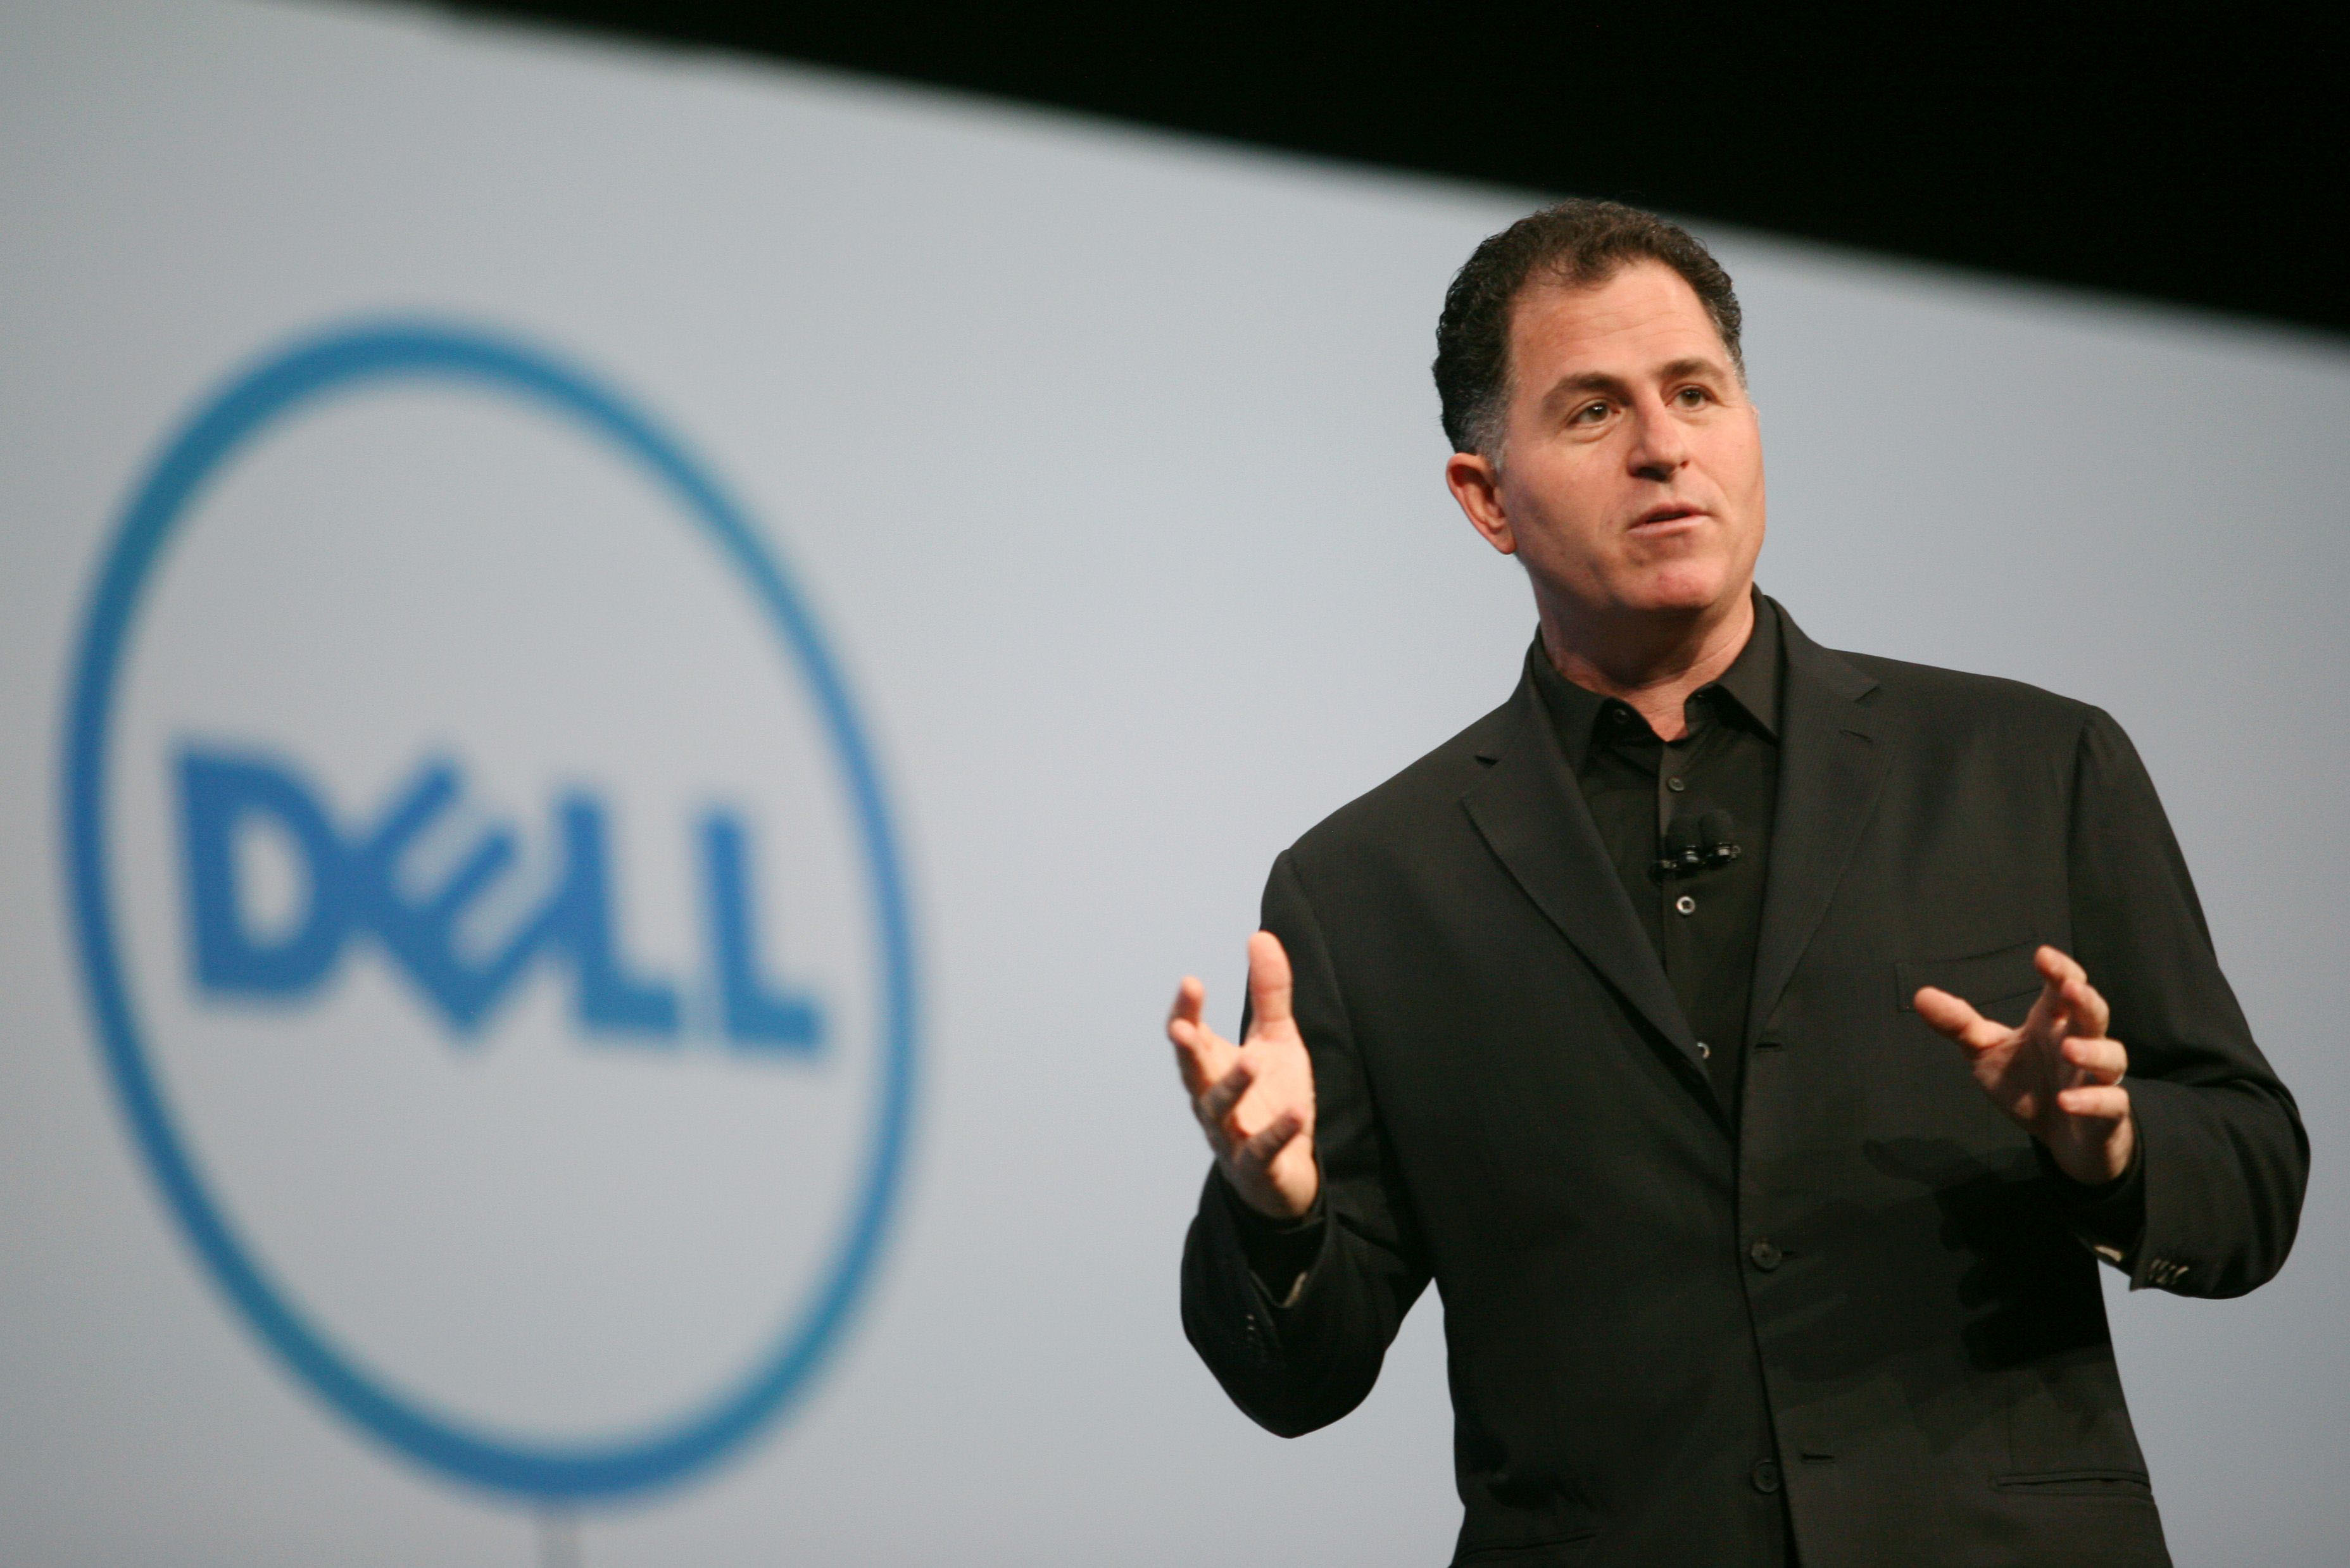 a biography of michael dell the founder of the dell corporation